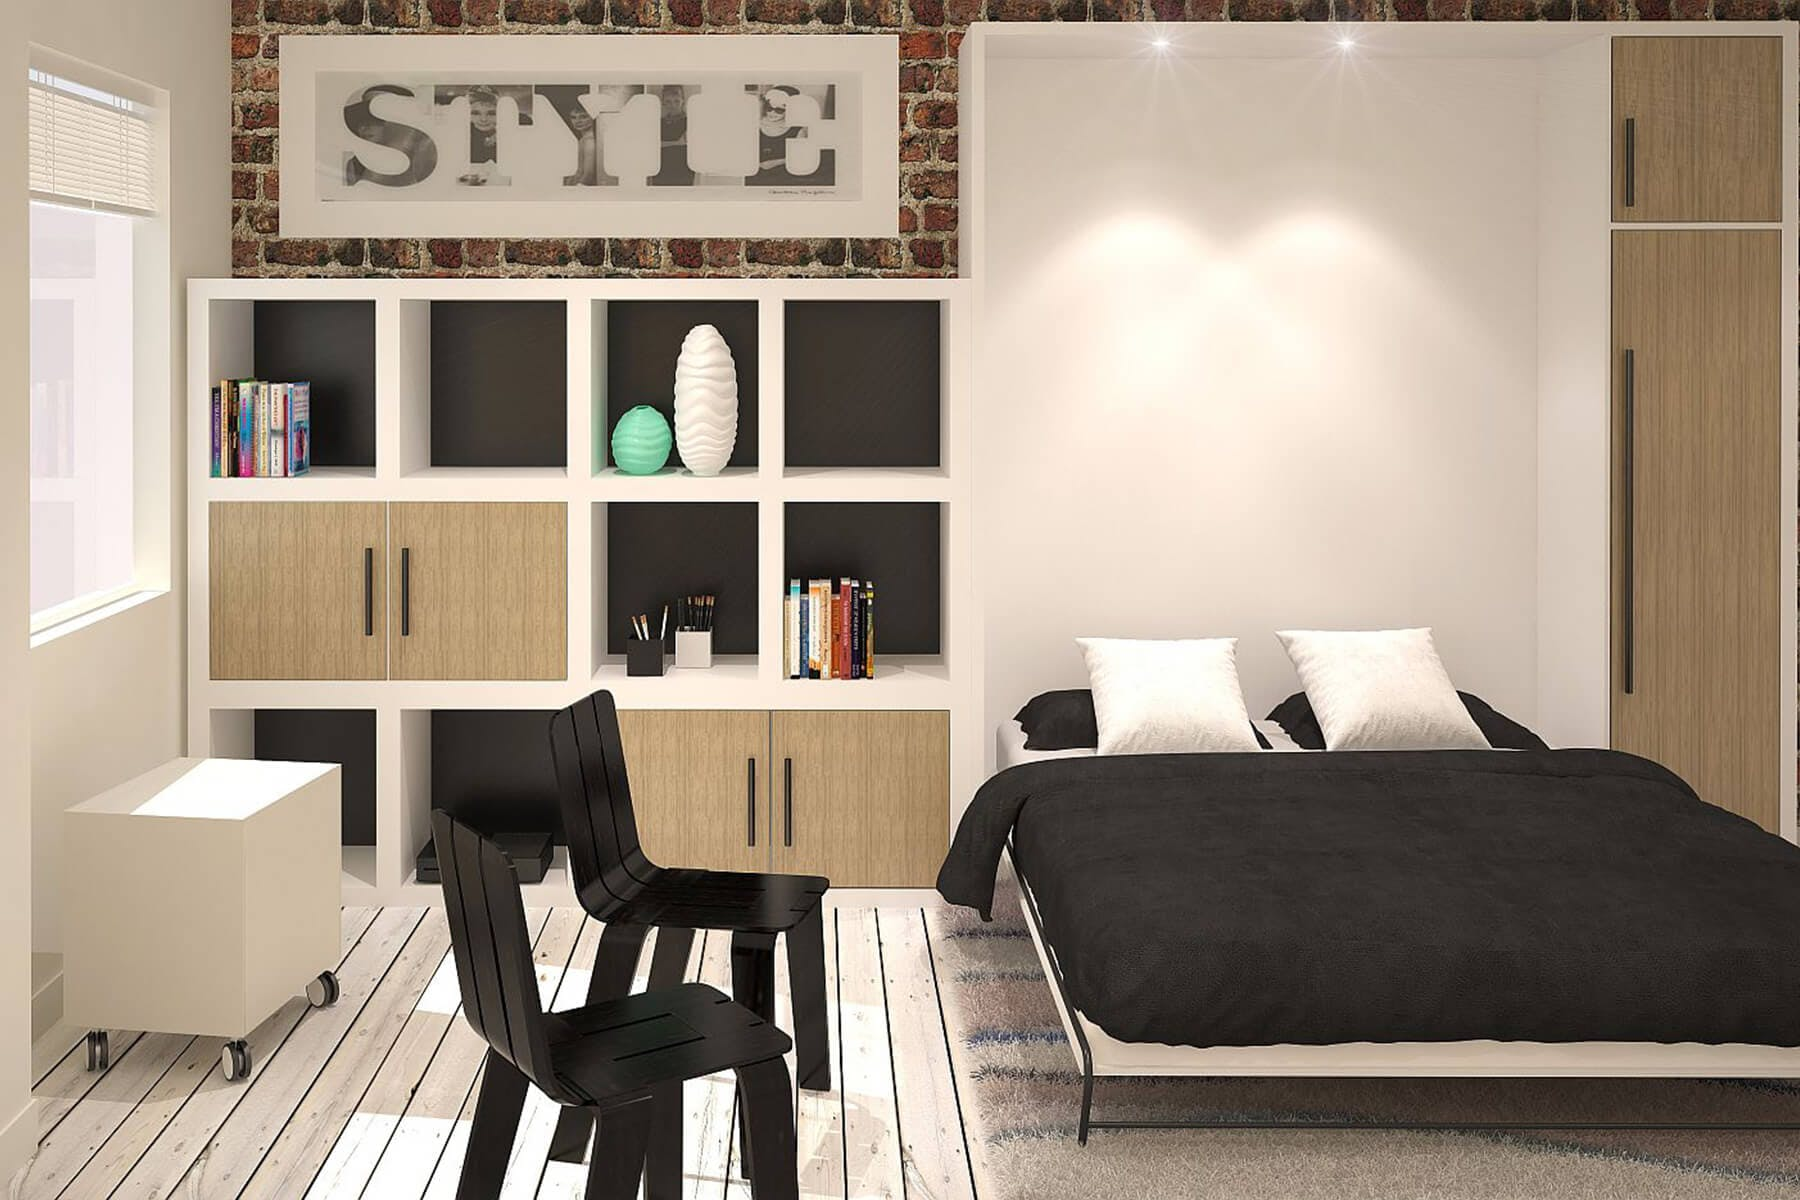 Modern Wall Bed. Modern Wall Bed Design Open